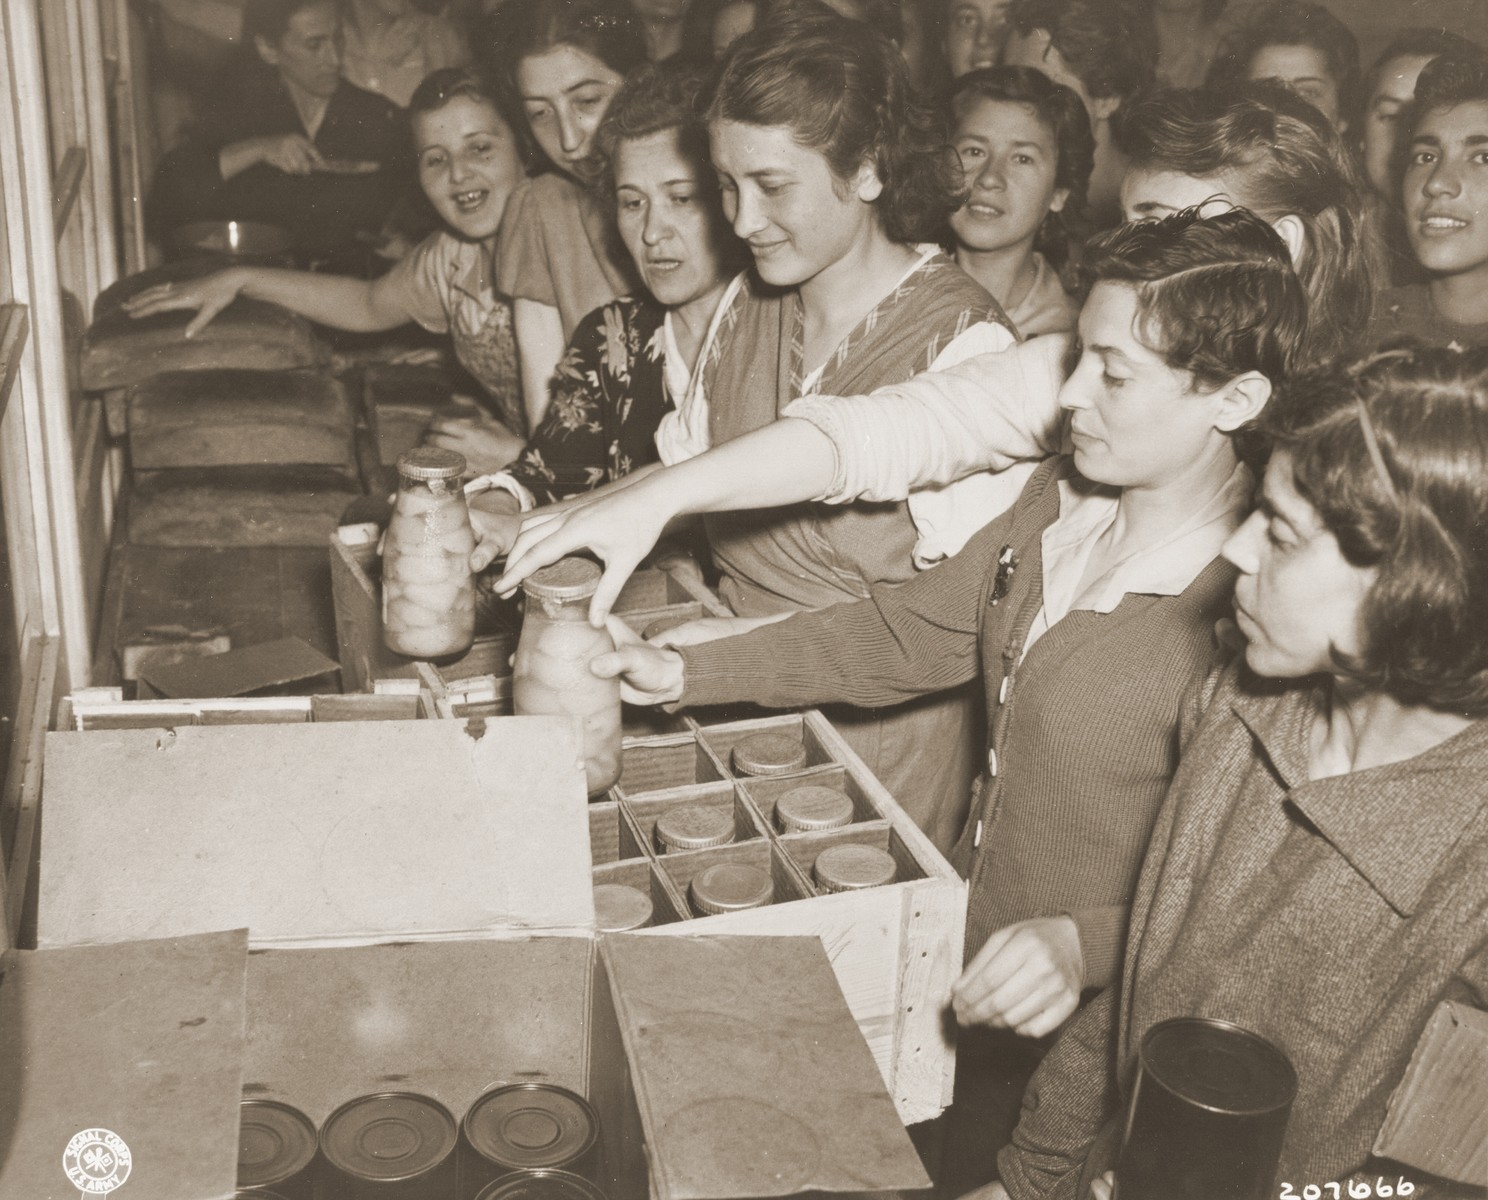 Jewish women liberated from a factory in Mehlteuer are given food seized from Nazi warehouses.    Approximately 400 Jewish women were forced to work in the factory until liberated by the 87th Division of the U.S. Army.  The women had been moved from one city to another, and were previously in Magdeburg before it fell.